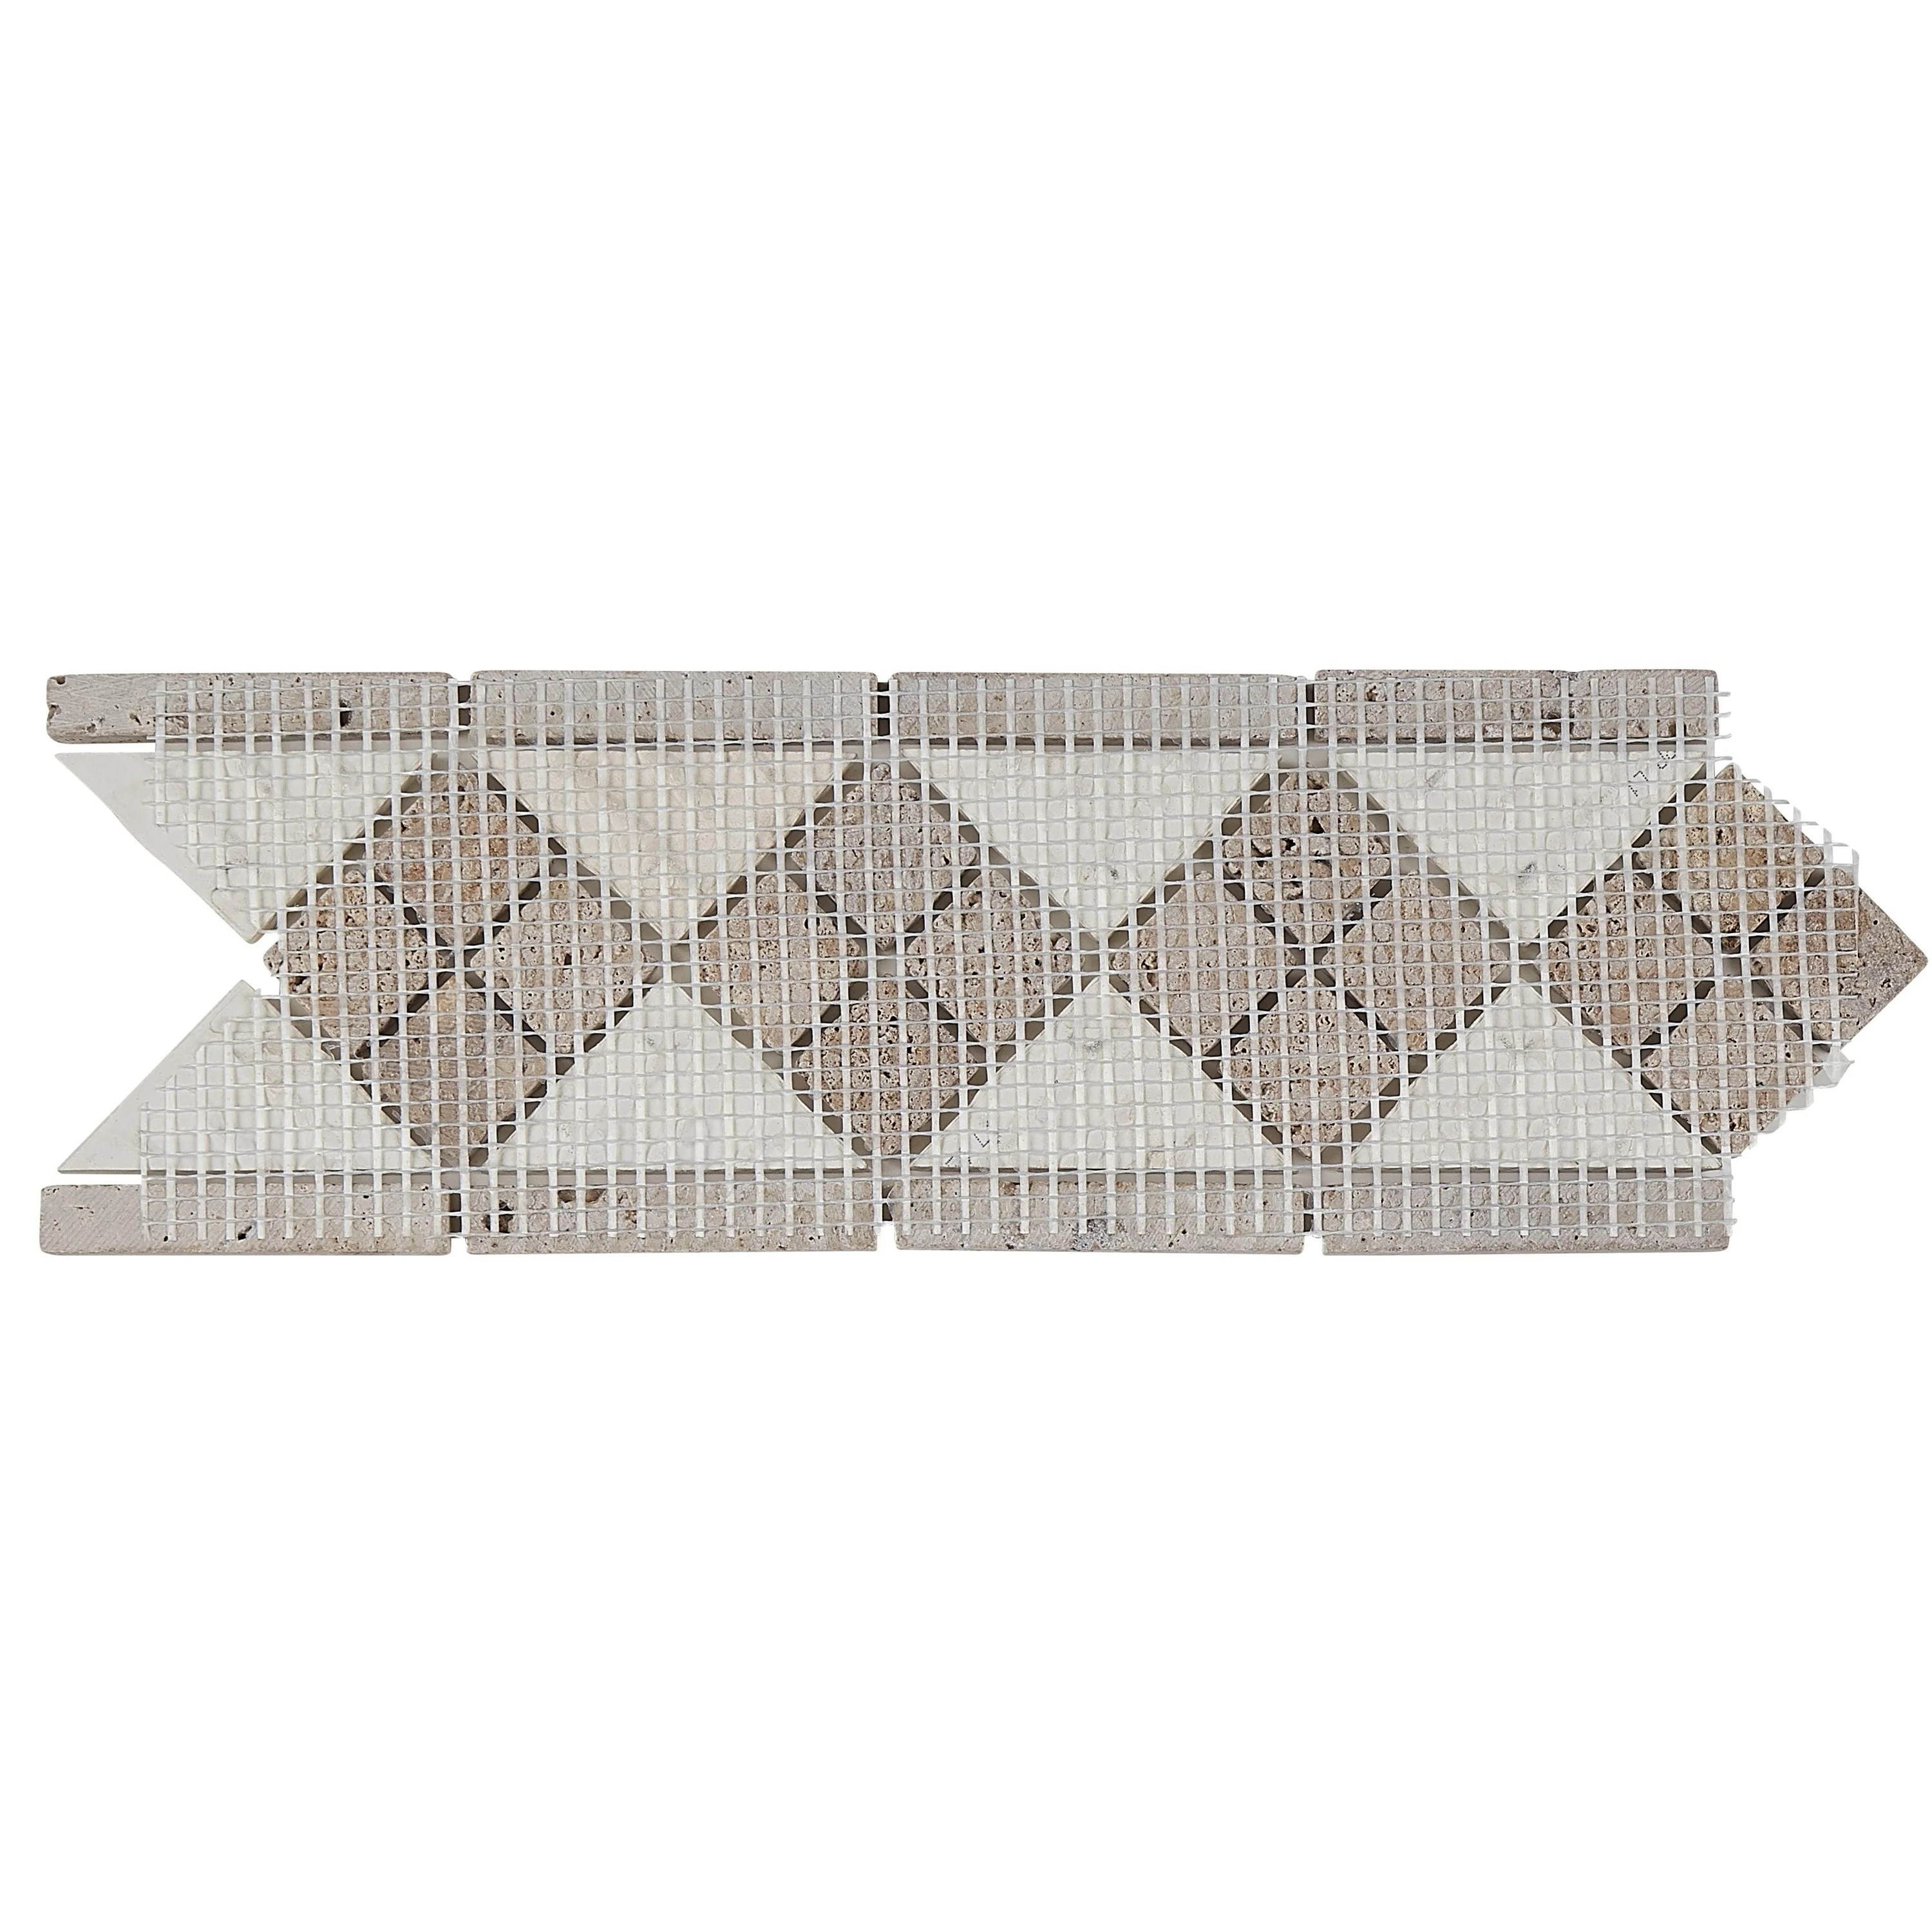 Tile Listello Complimentary Stone 4x12 Inch Tumbled Listello Accent Tile In Almond And Noce 4x12